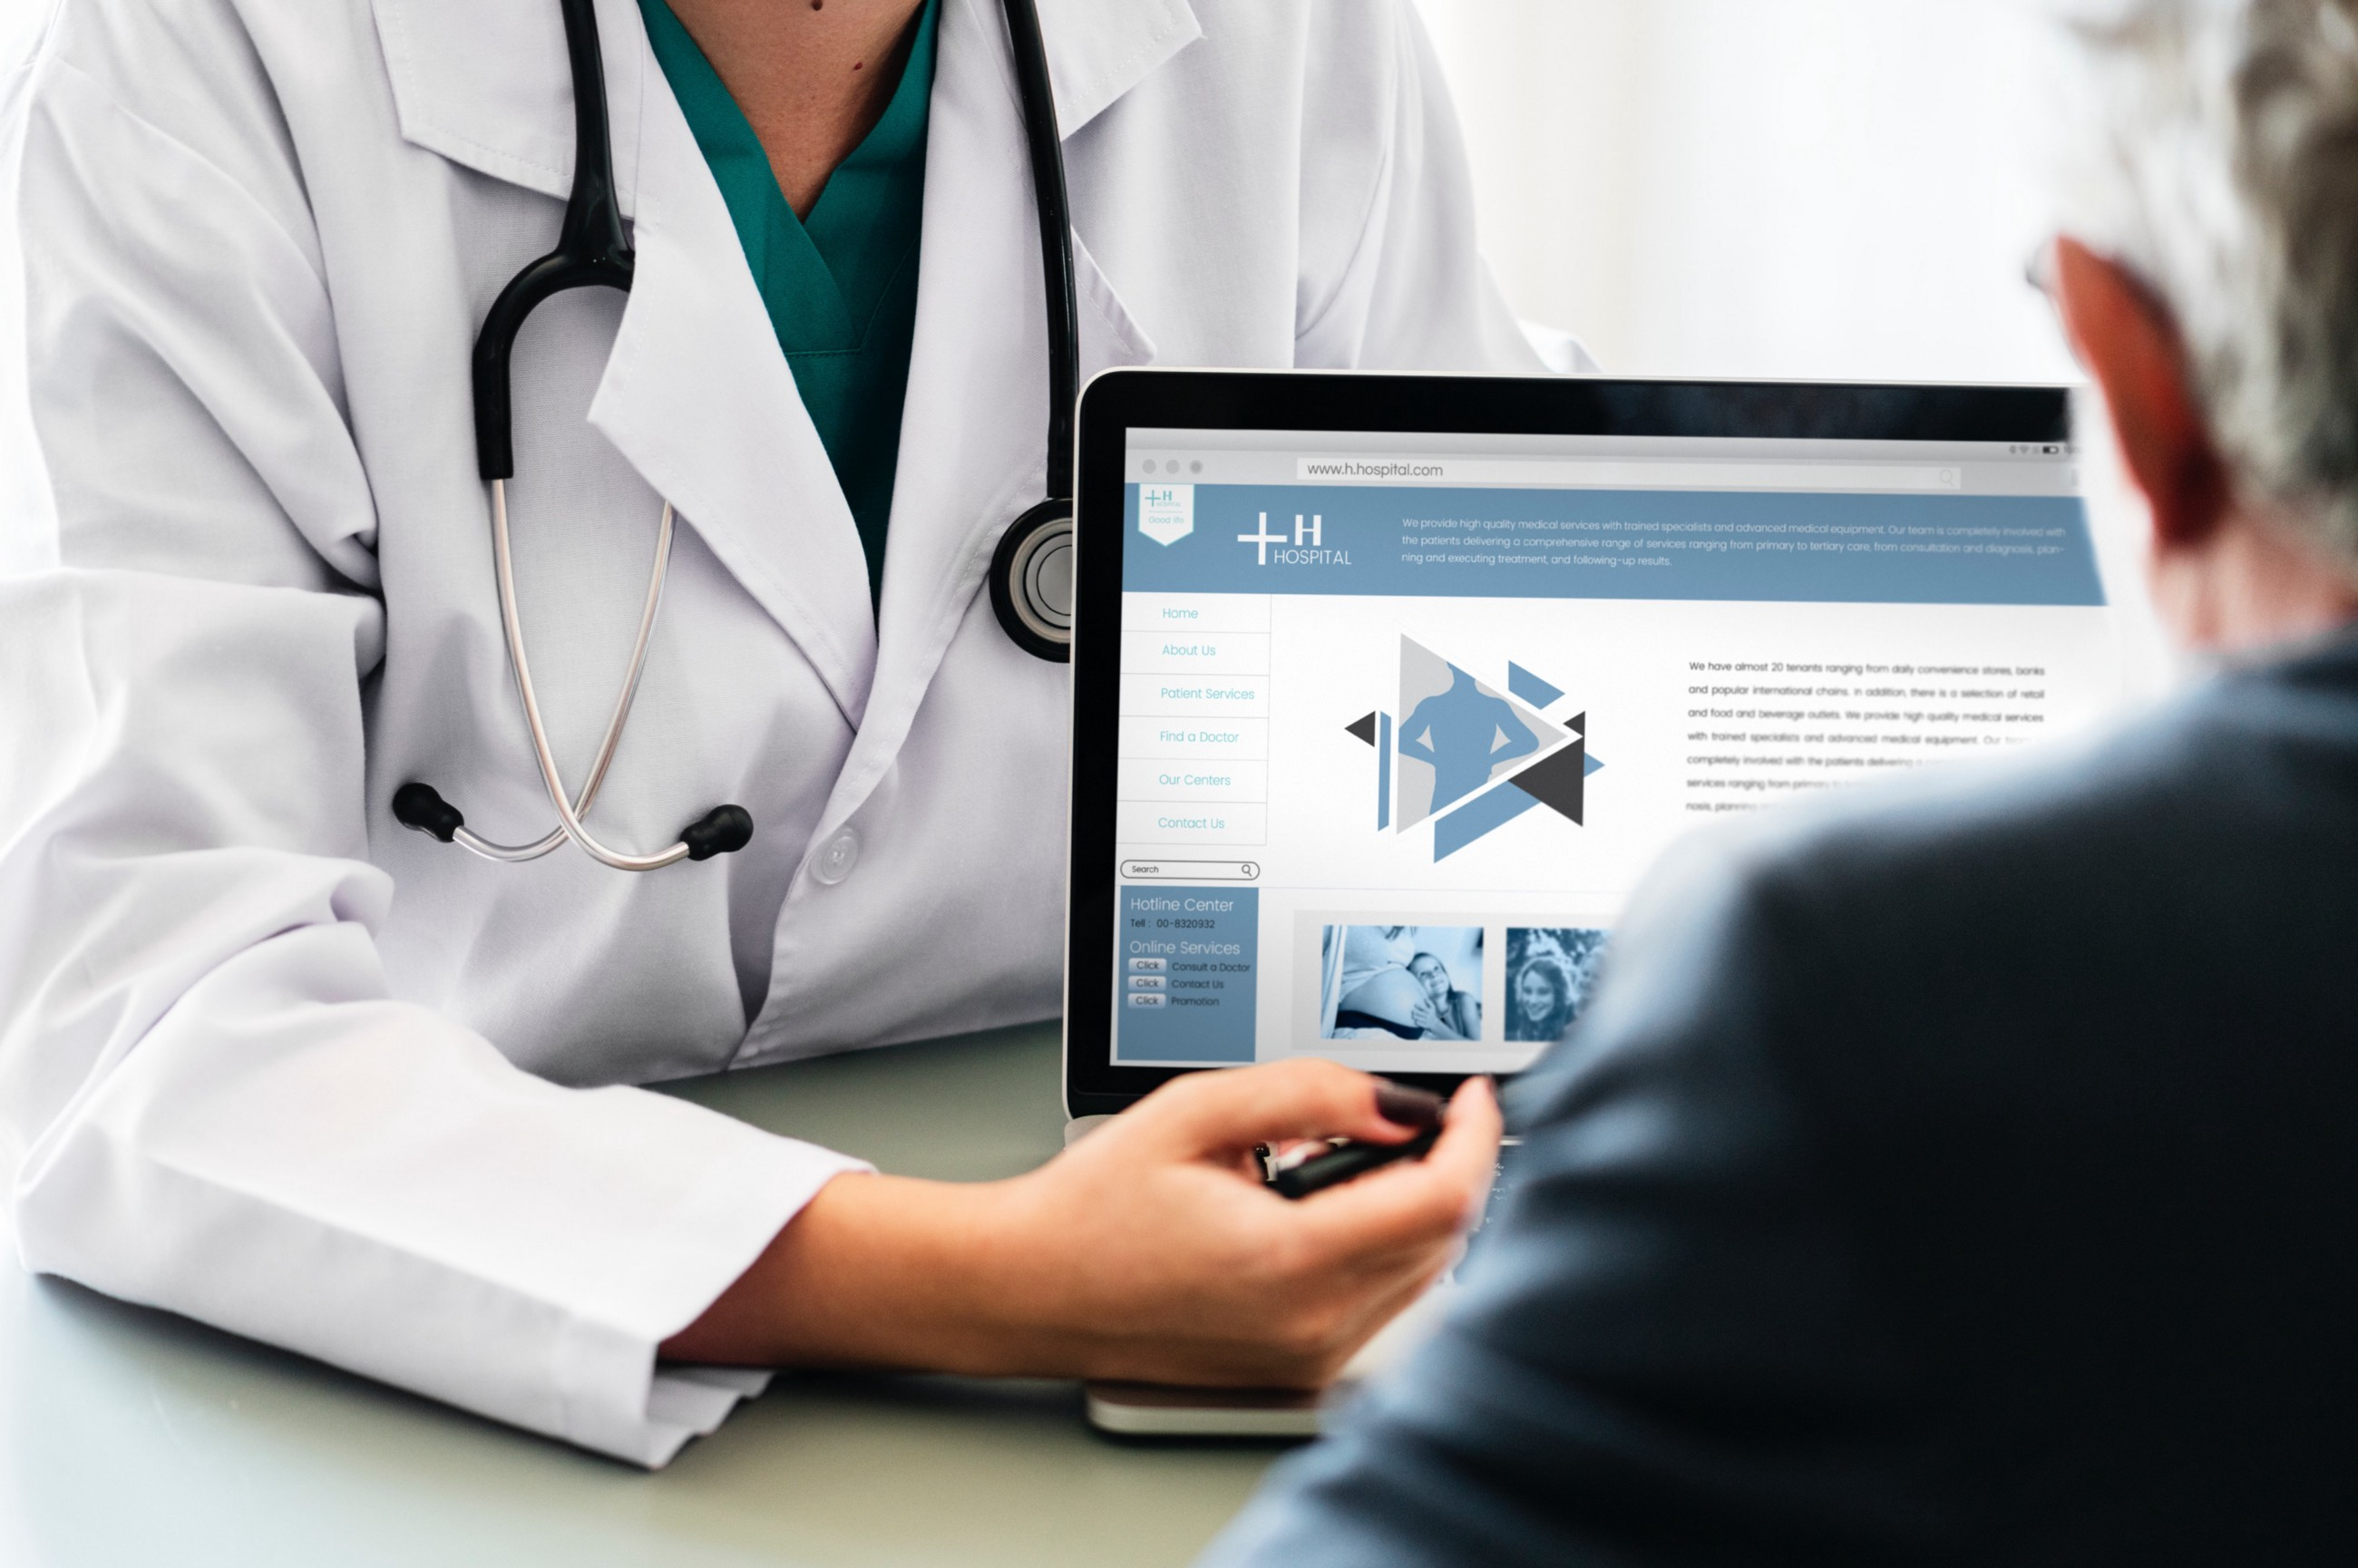 /hipaa-compliance-and-its-implications-in-developing-healthcare-apps-8f9c73f7f4ce feature image